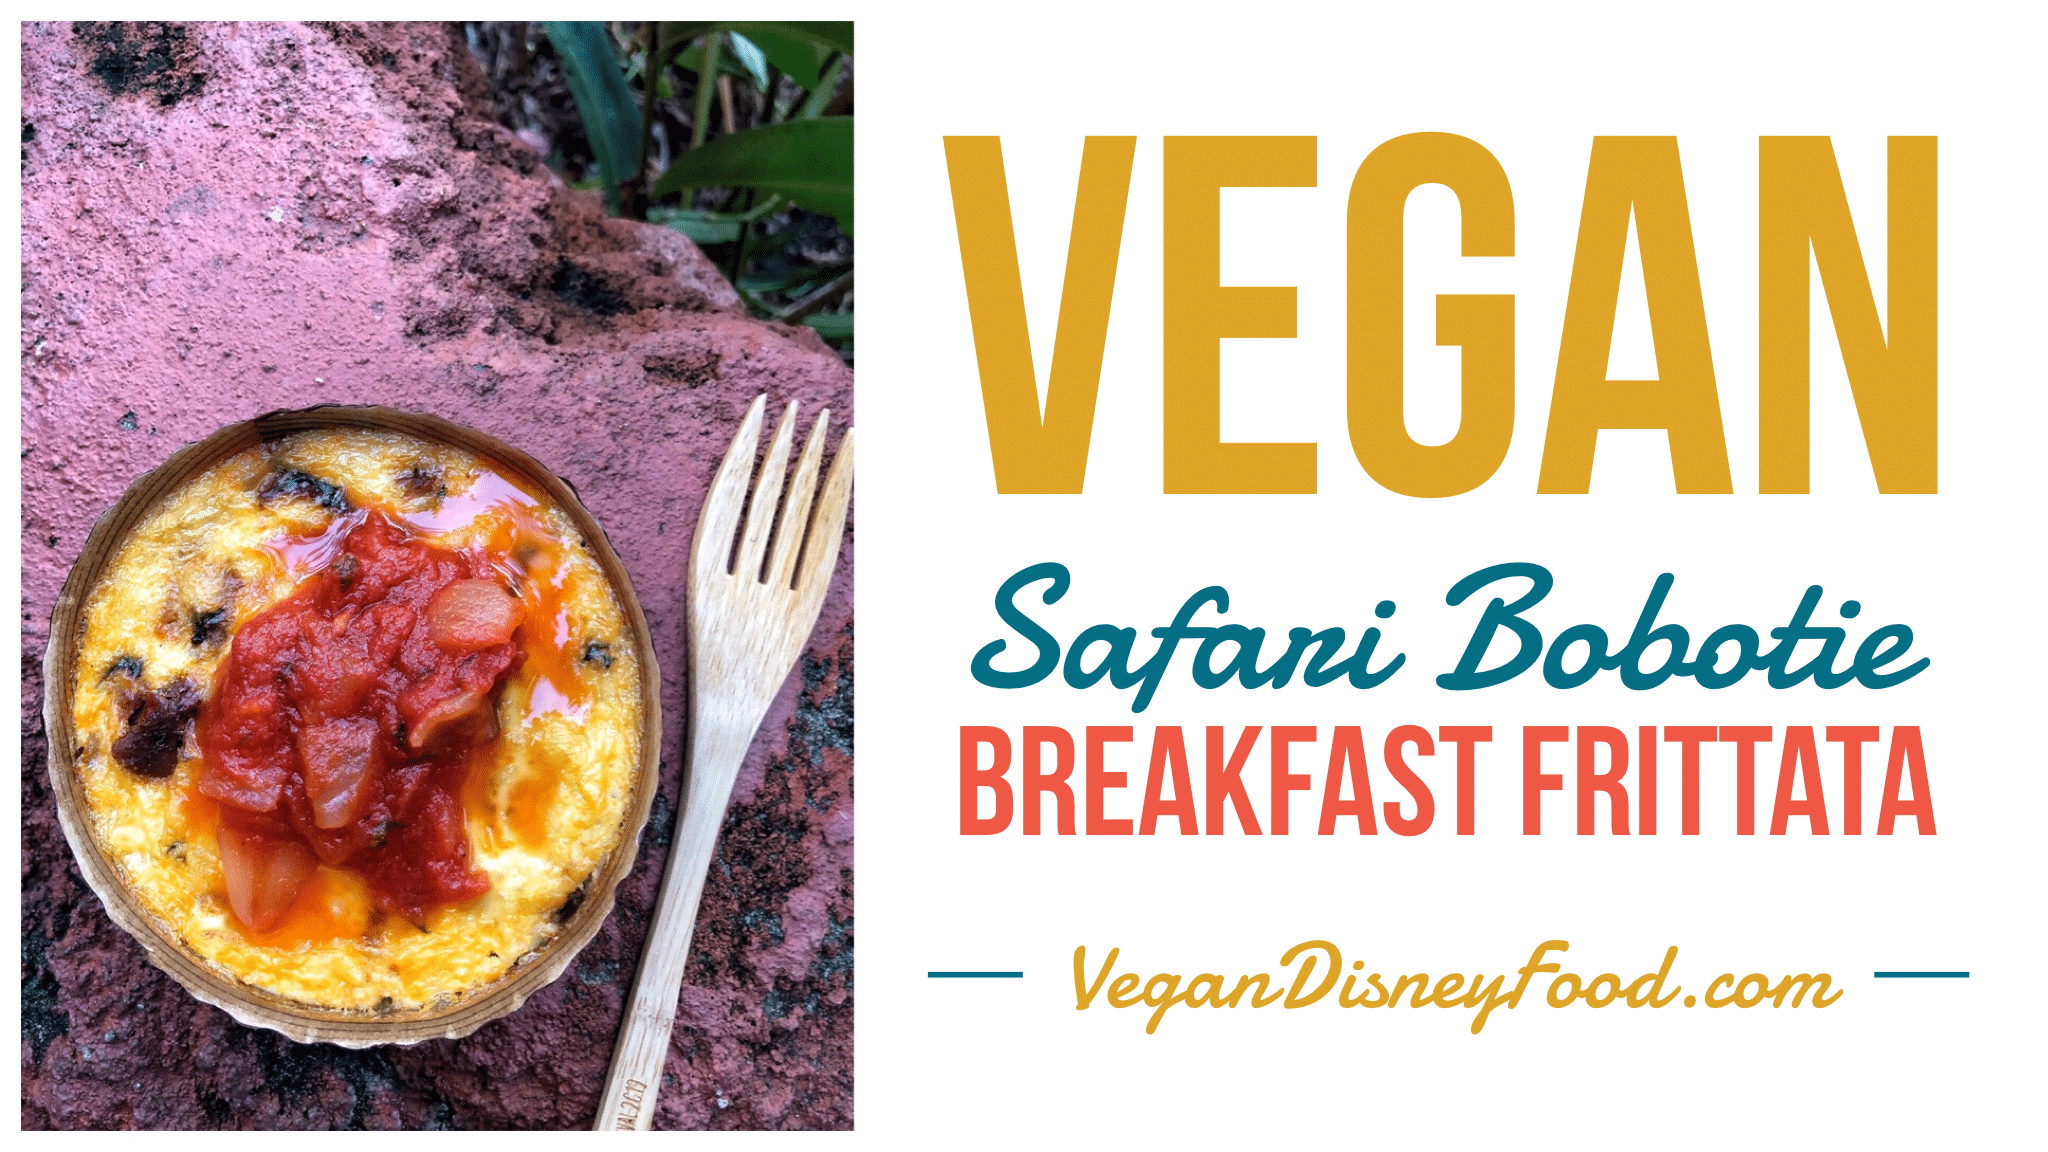 Vegan Safari Bobotie Breakfast at The Mara in Animal Kingdom Lodge at Walt Disney World